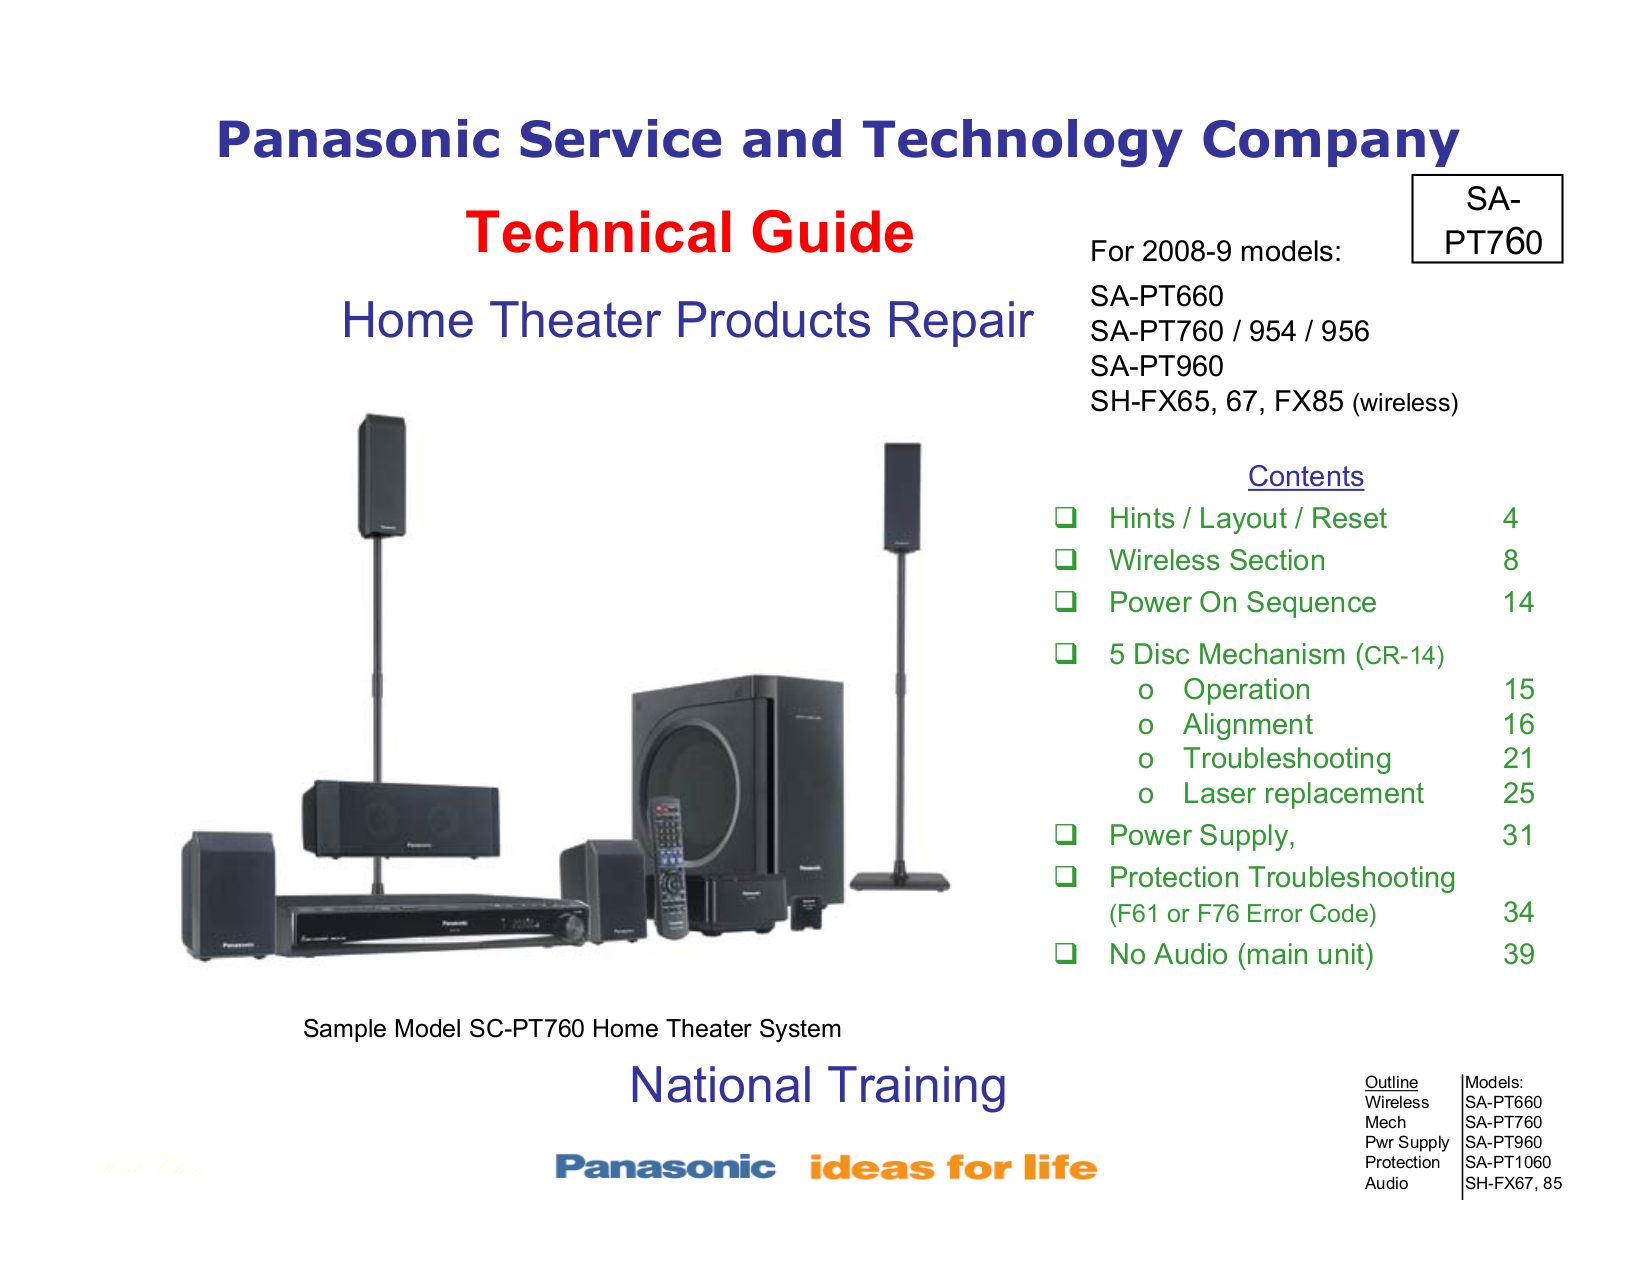 Panasonic home theater model sc-pt760